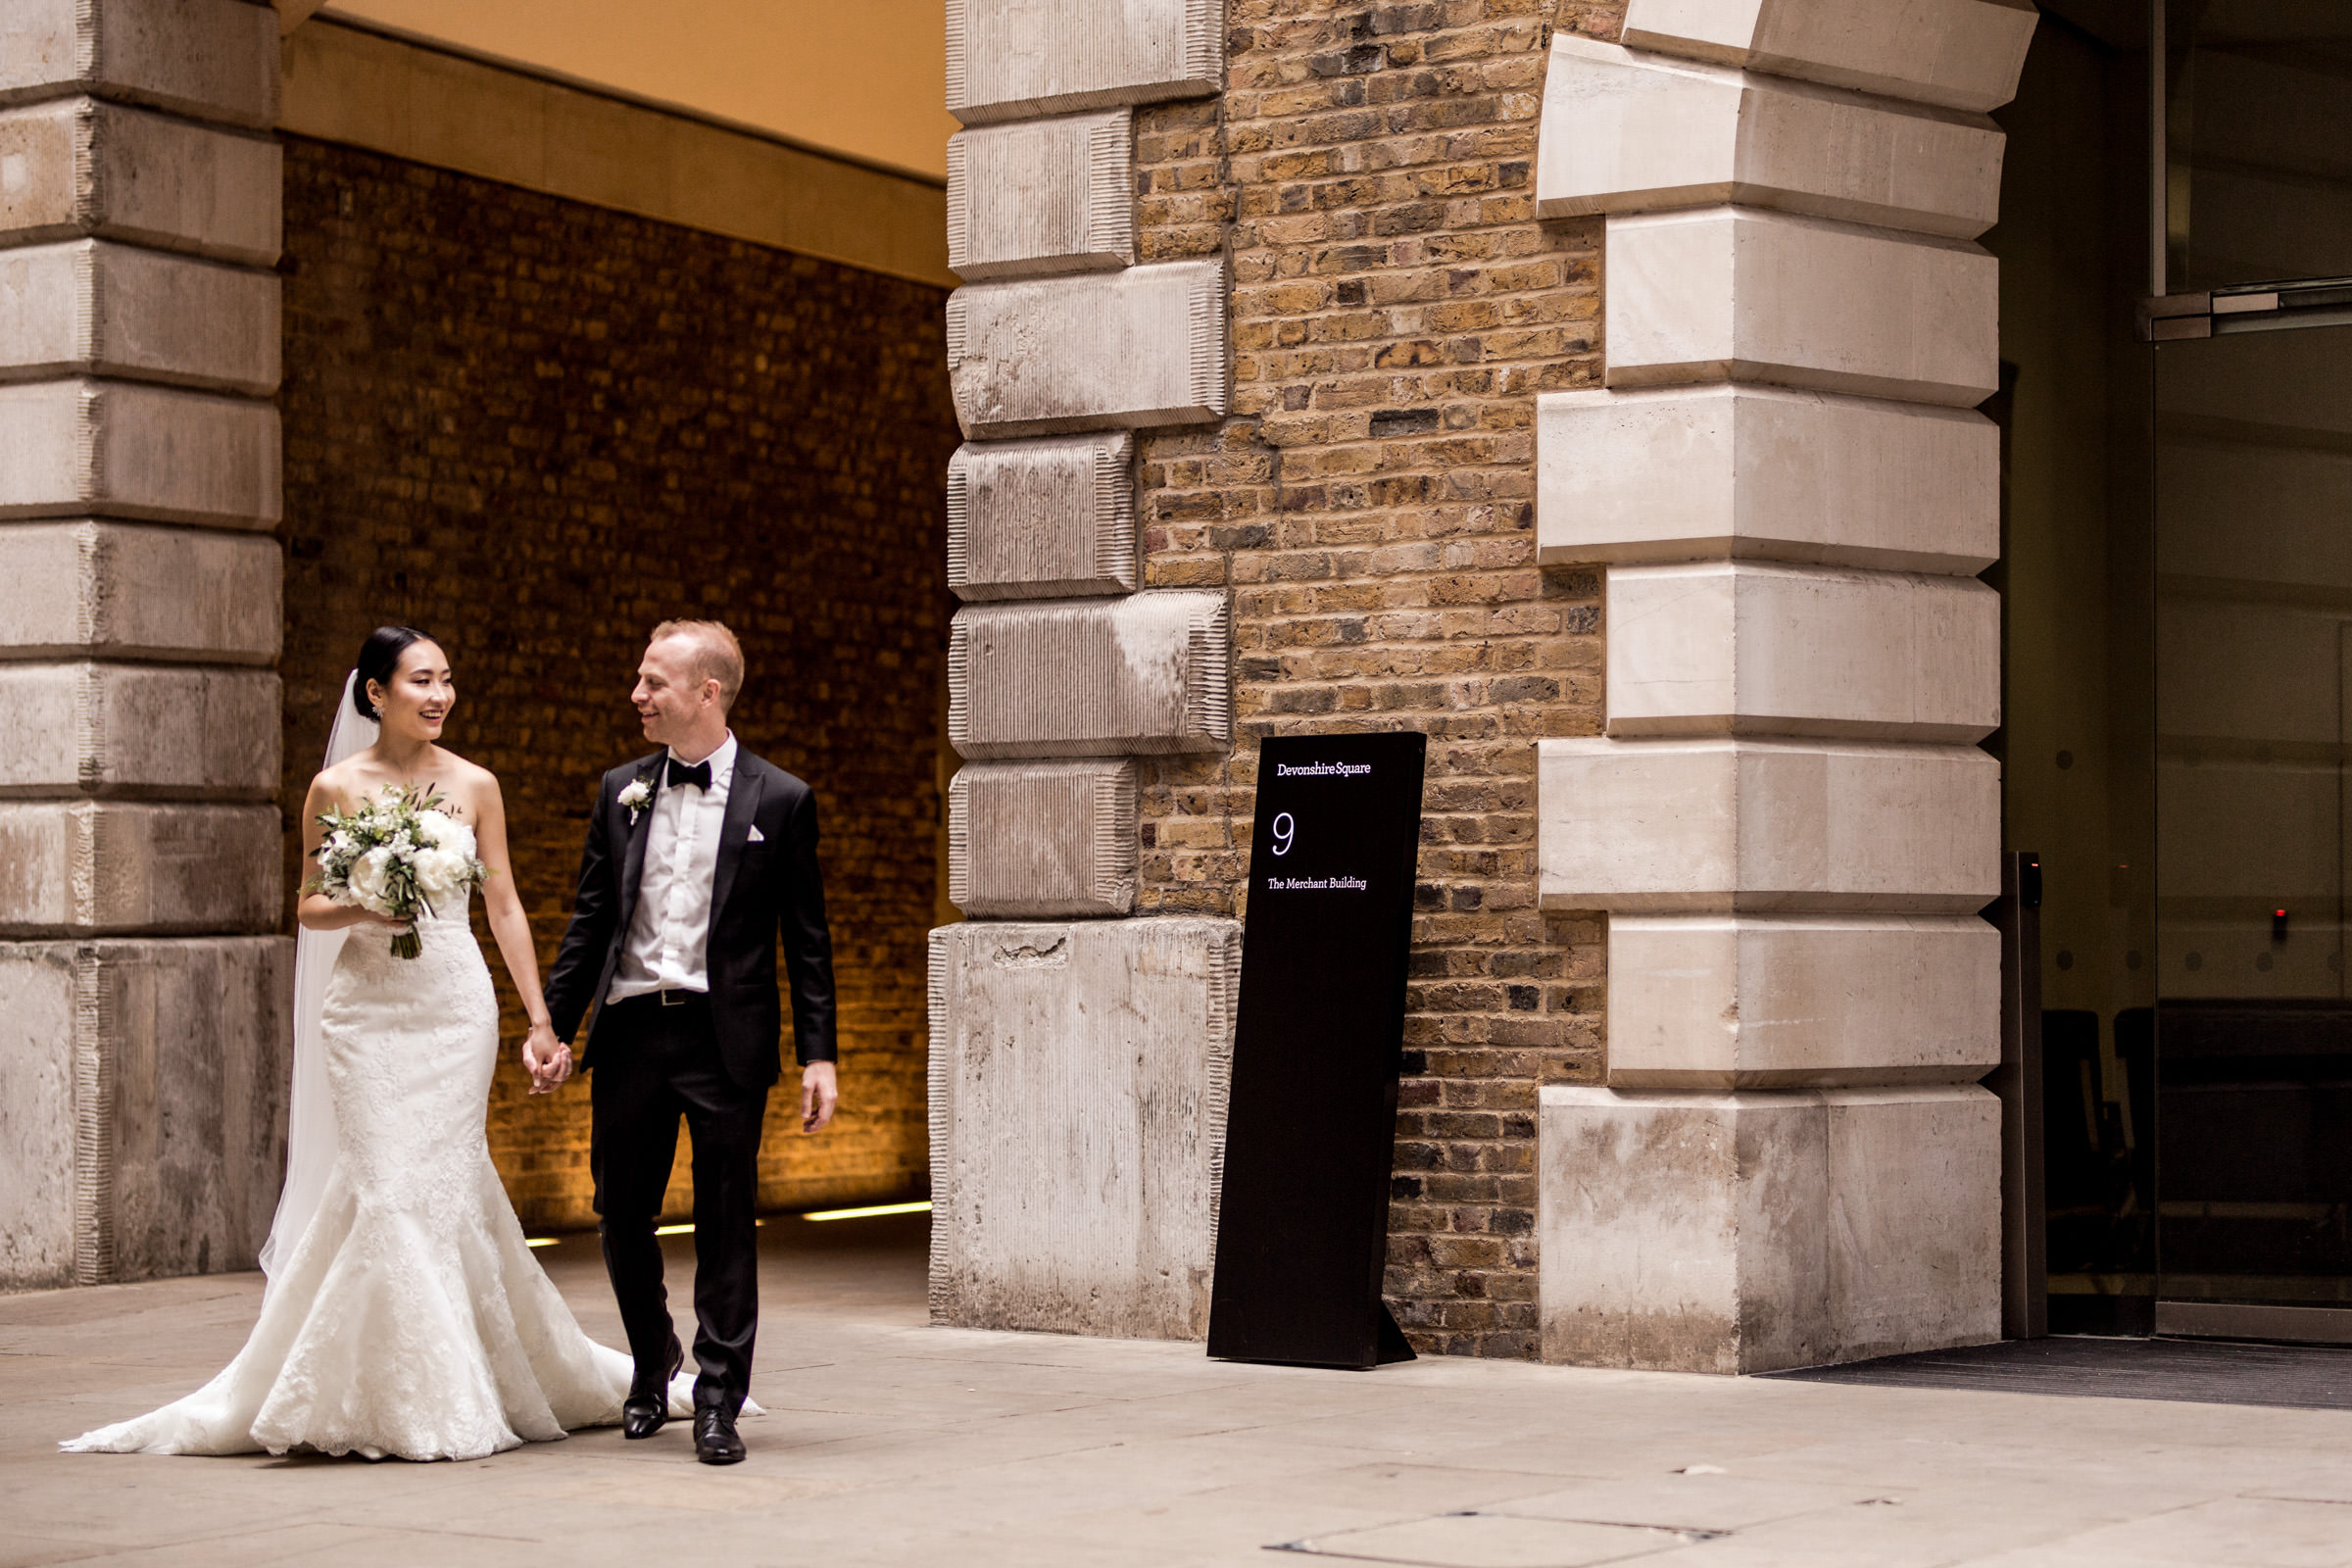 Wedding photography at Devonshire Terrace 014.jpg